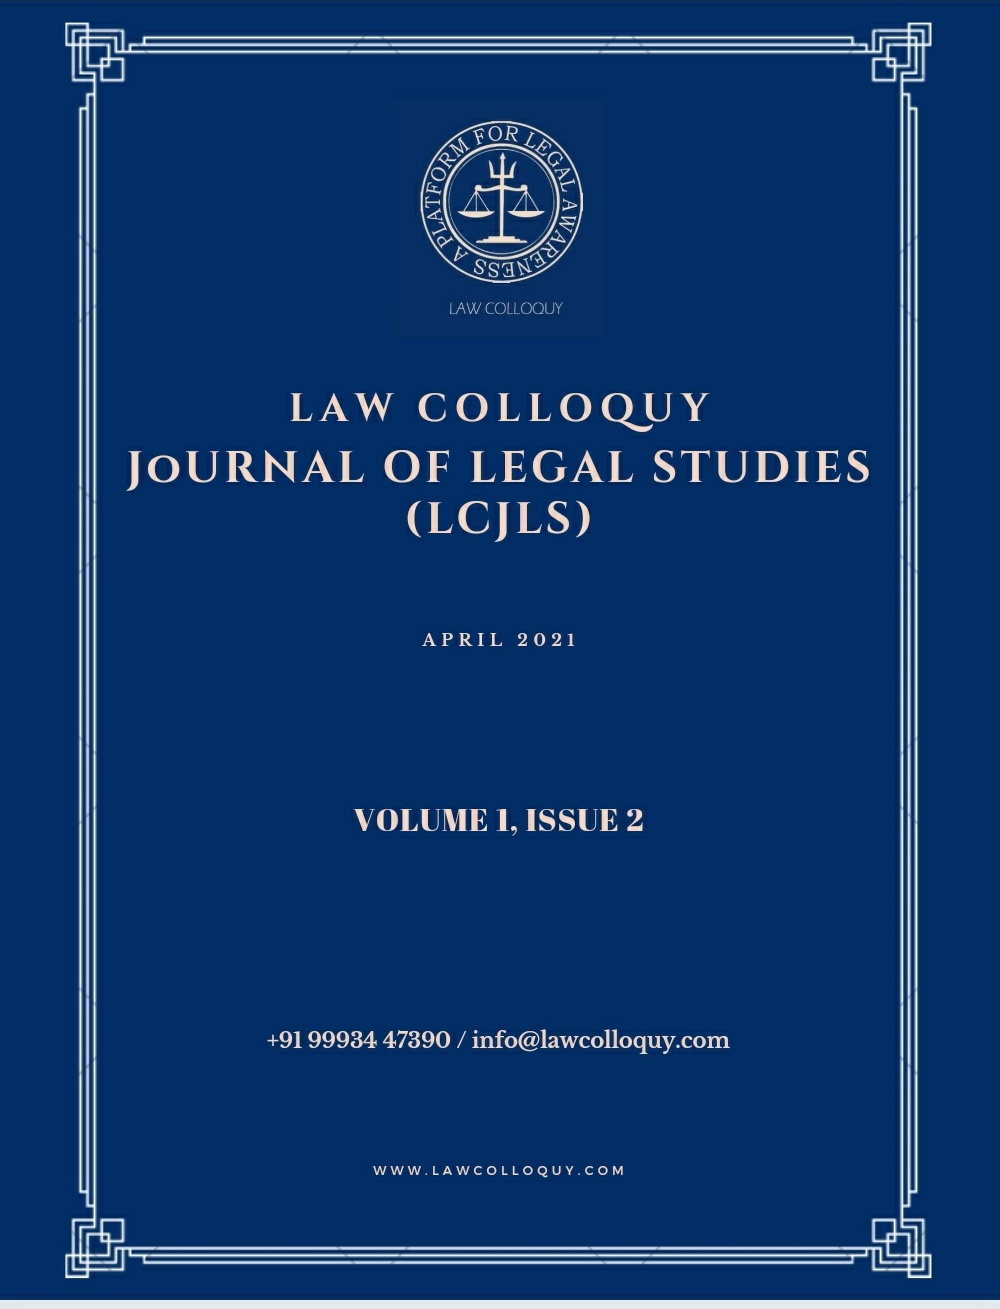 https://lawcolloquy.com//assets/img/icons/download.jpg